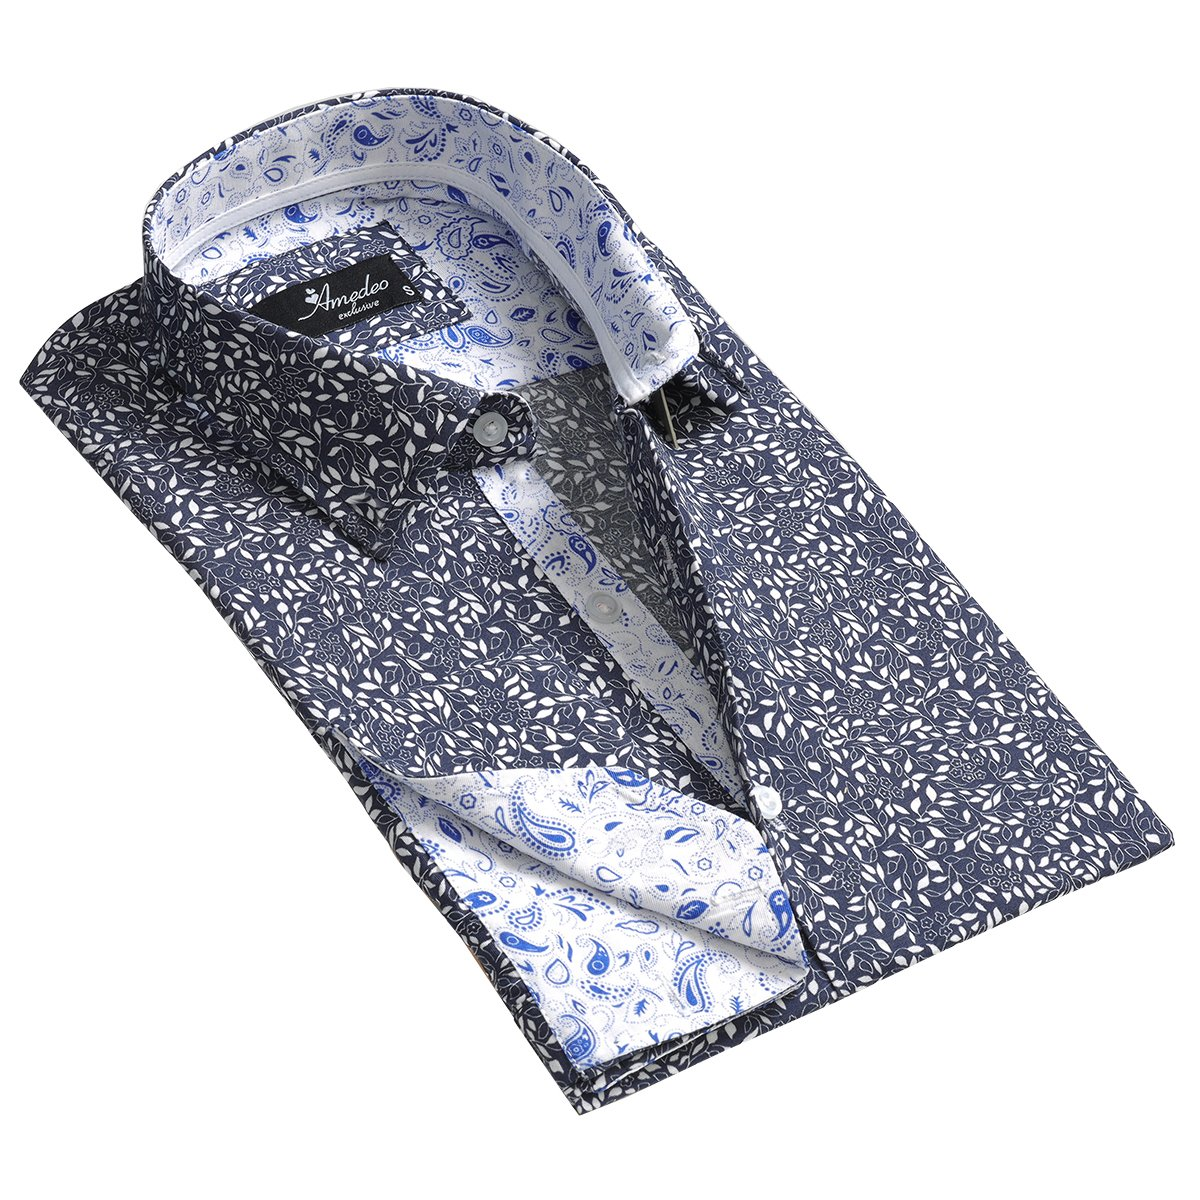 Grey Blue Floral Design Men's Reversible Dress Shirt, Button Down Slim Fit with French Cuff Casual and Formal - Amedeo Exclusive